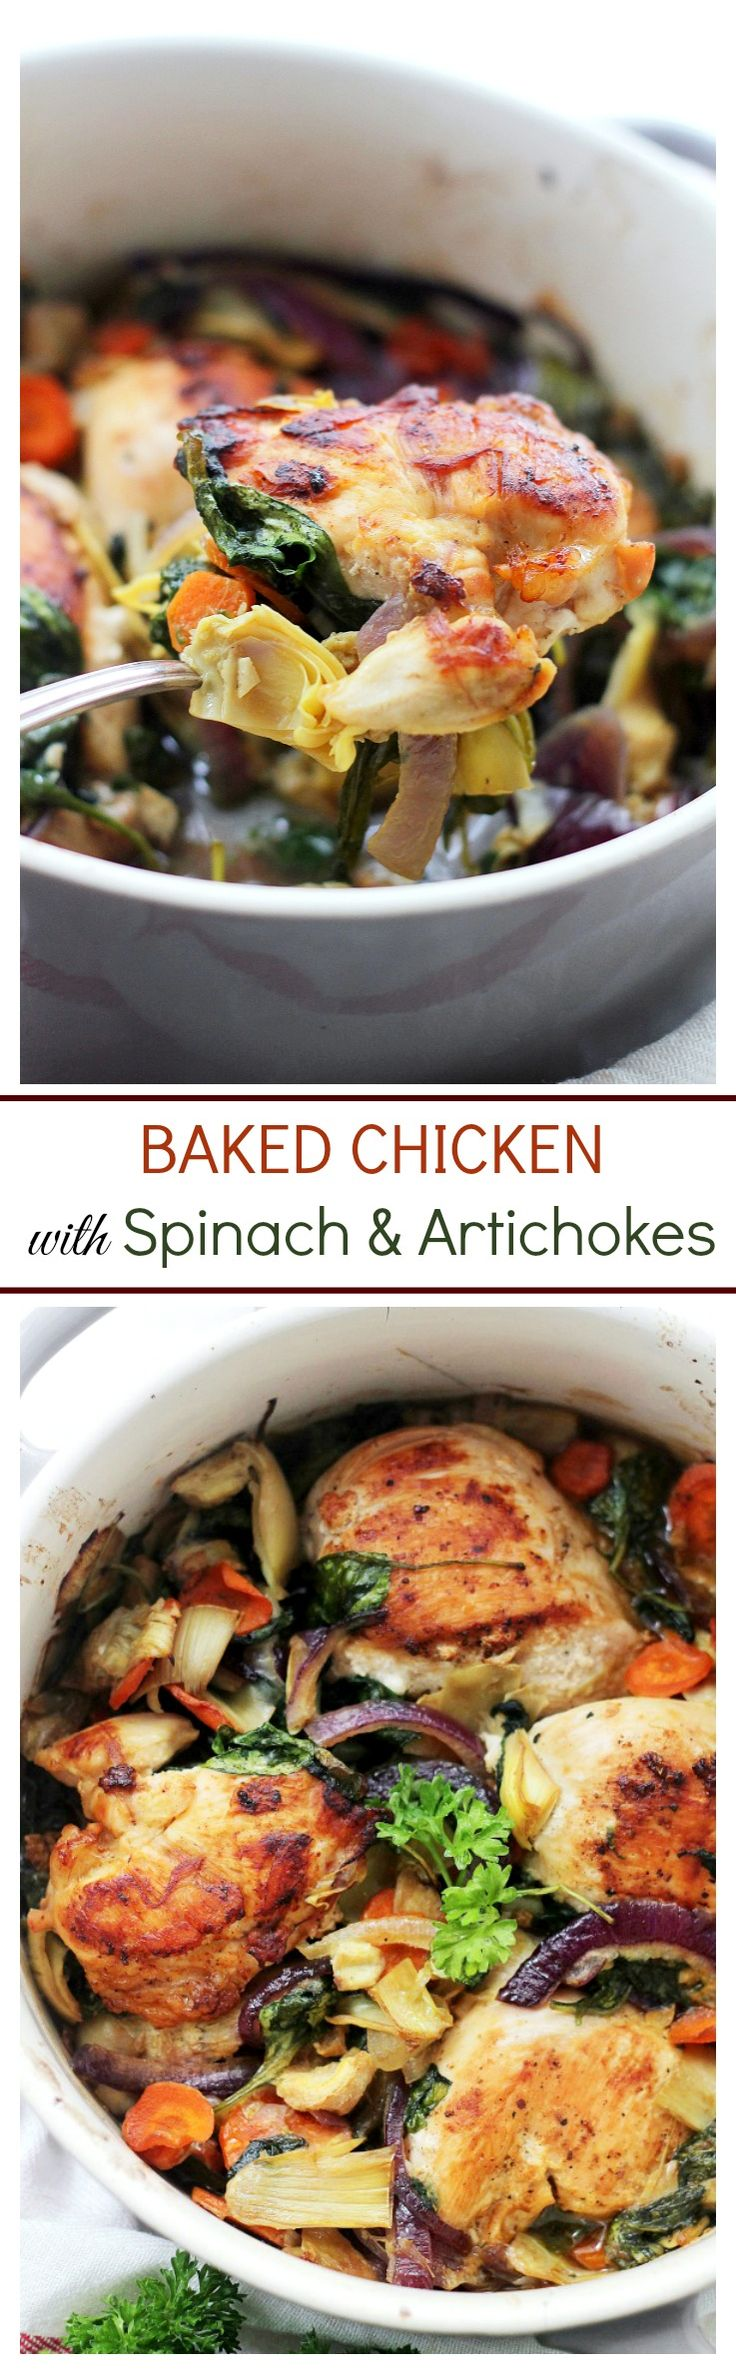 Baked Chicken with Spinach and Artichokes – Chicken, spinach and artichokes come together in this delicious, one-pot recipe.